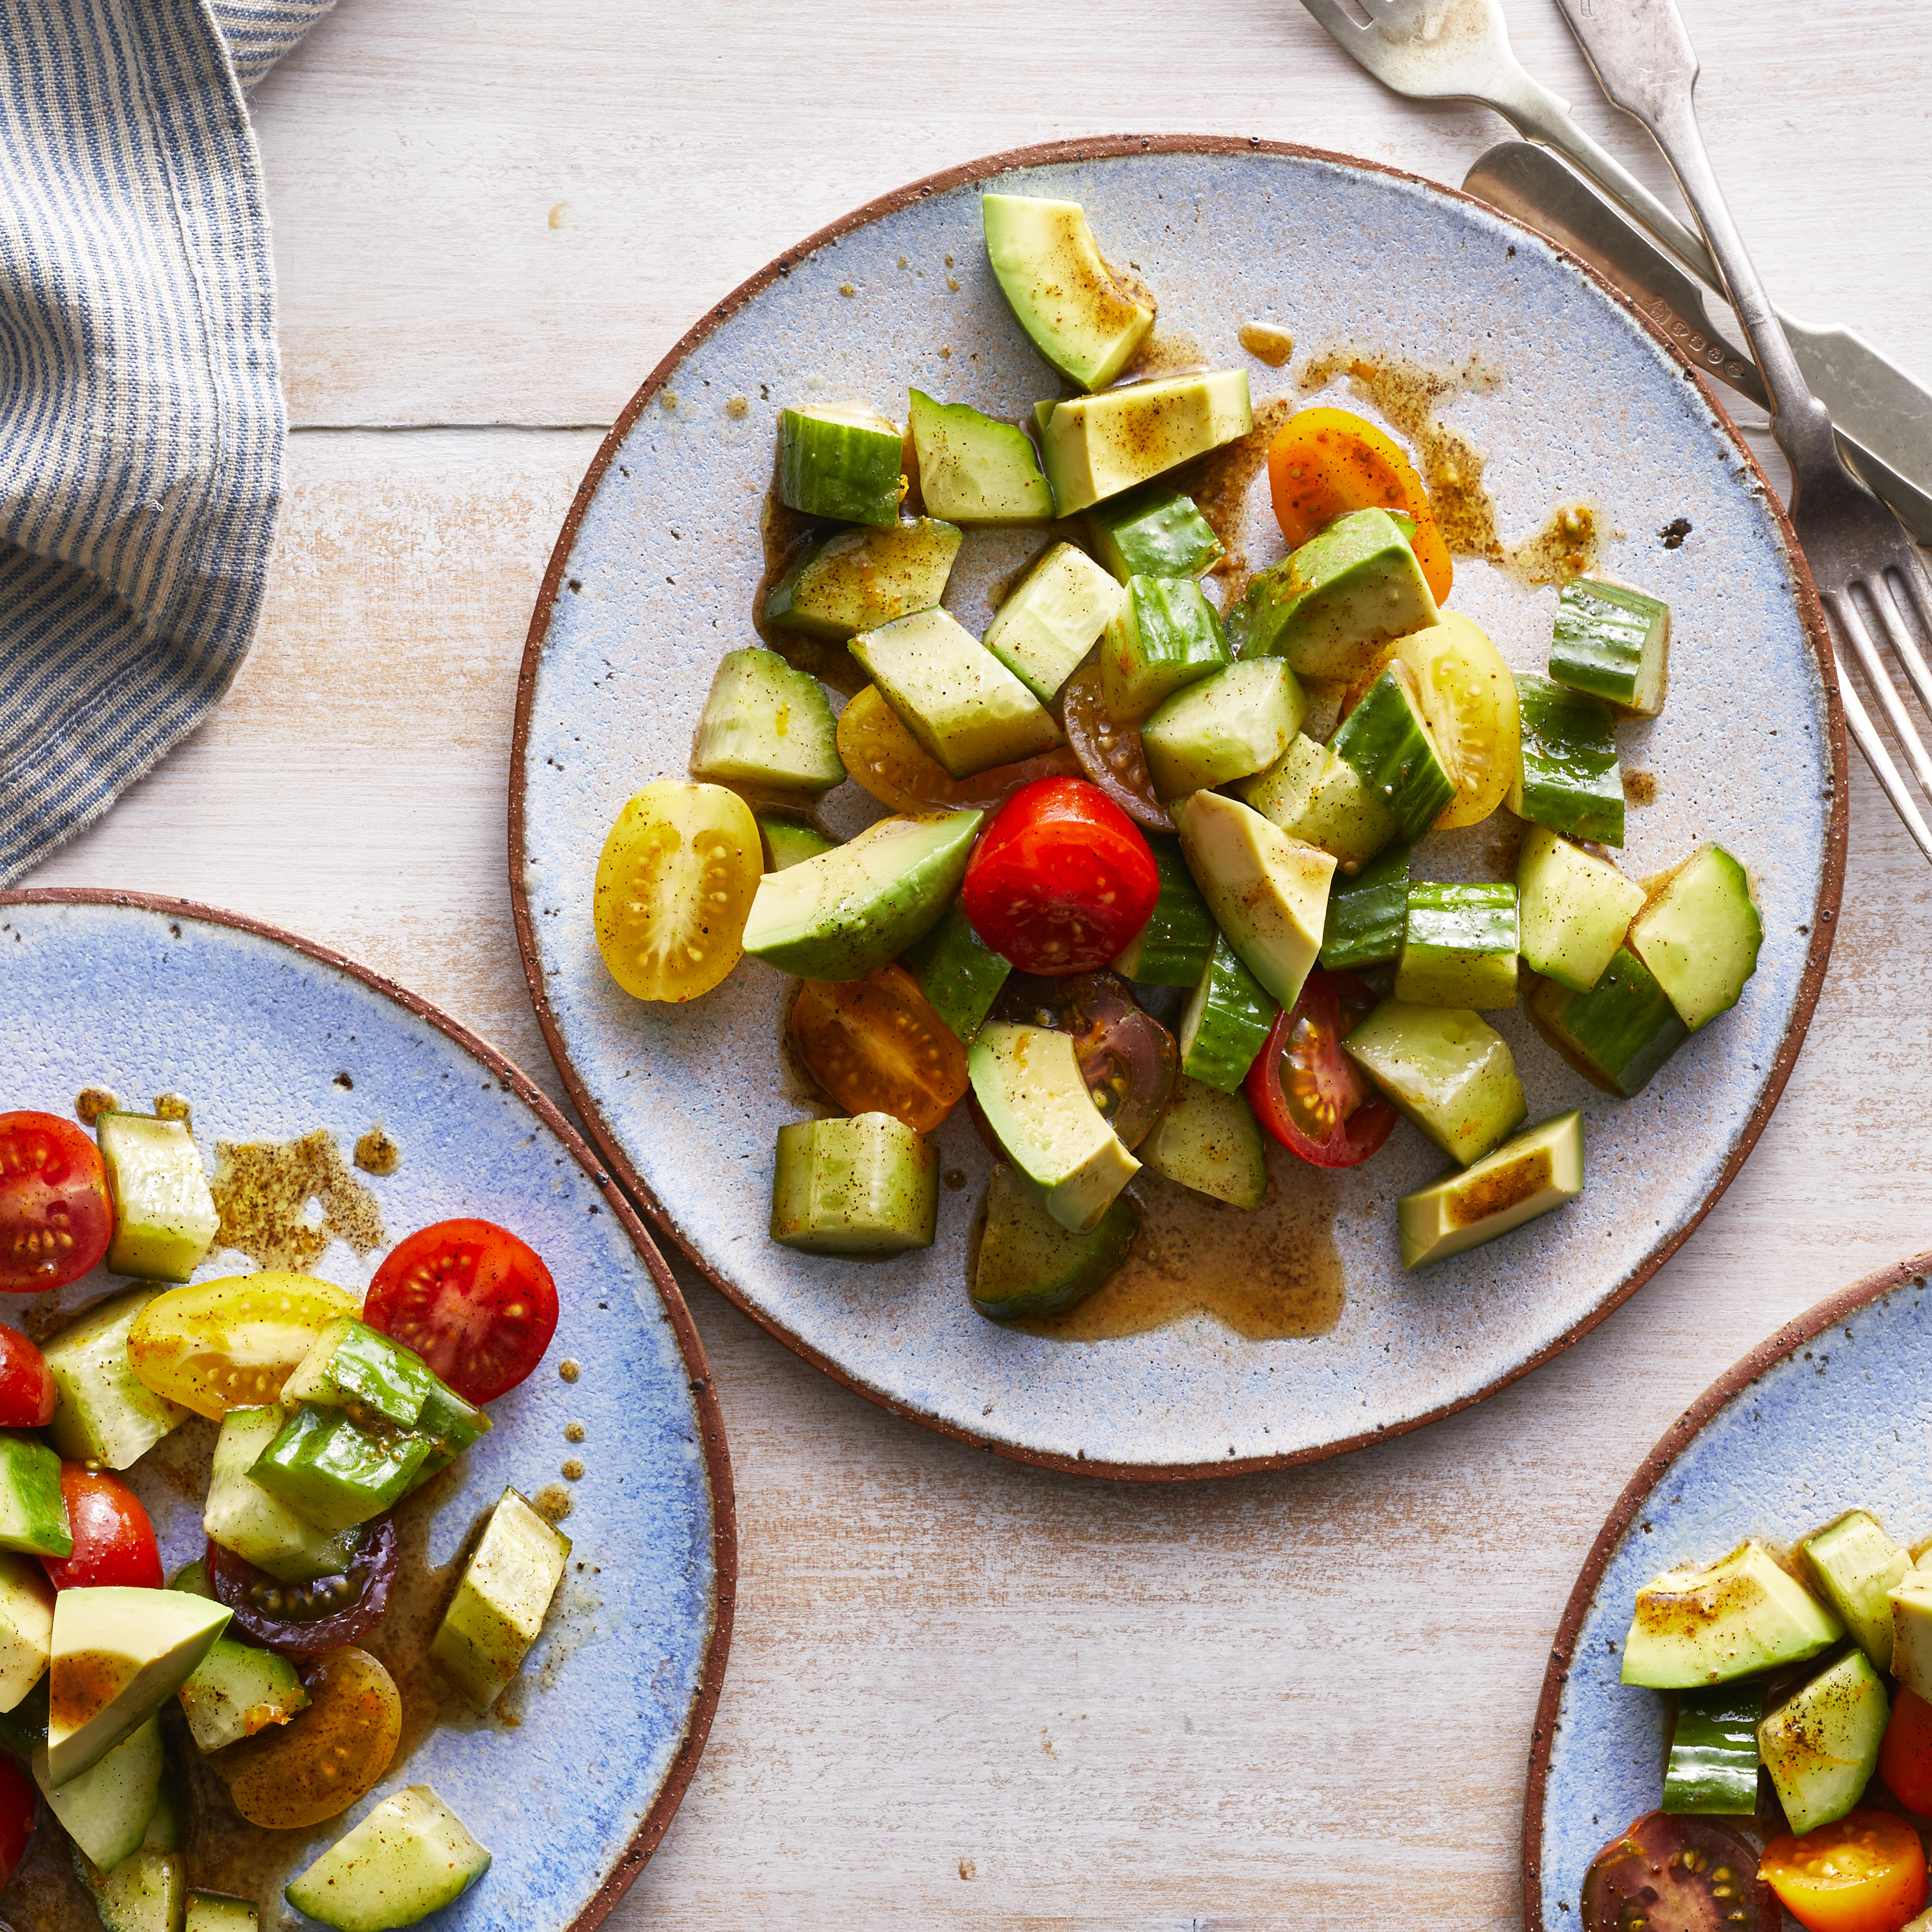 Cucumber, Tomato & Avocado Salad Trusted Brands